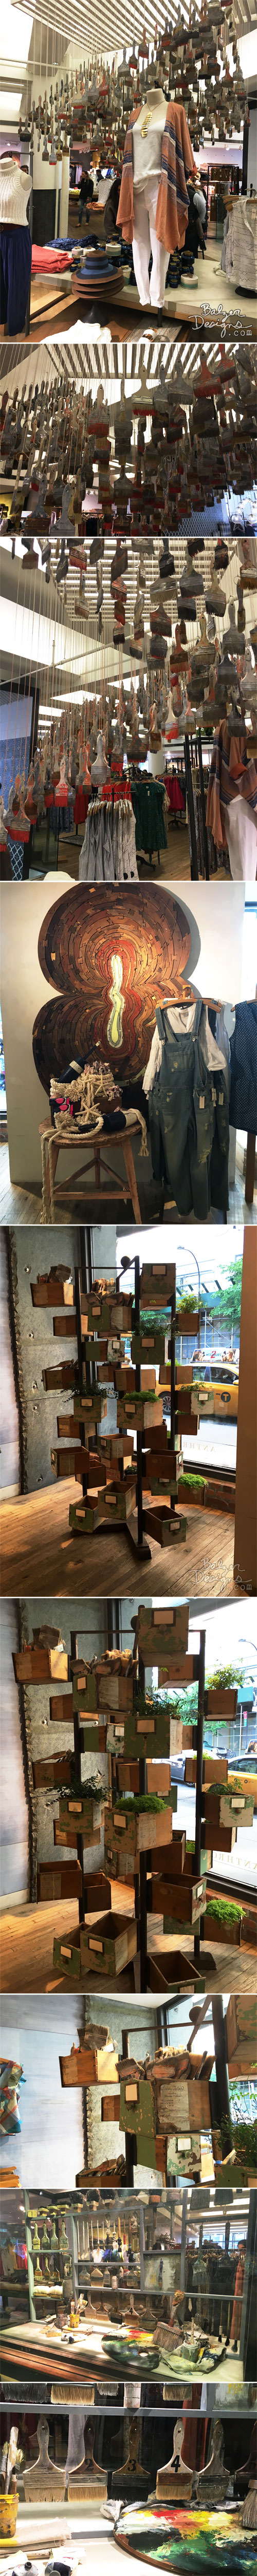 From the Balzer Designs Blog: Inspired by Retail Displays